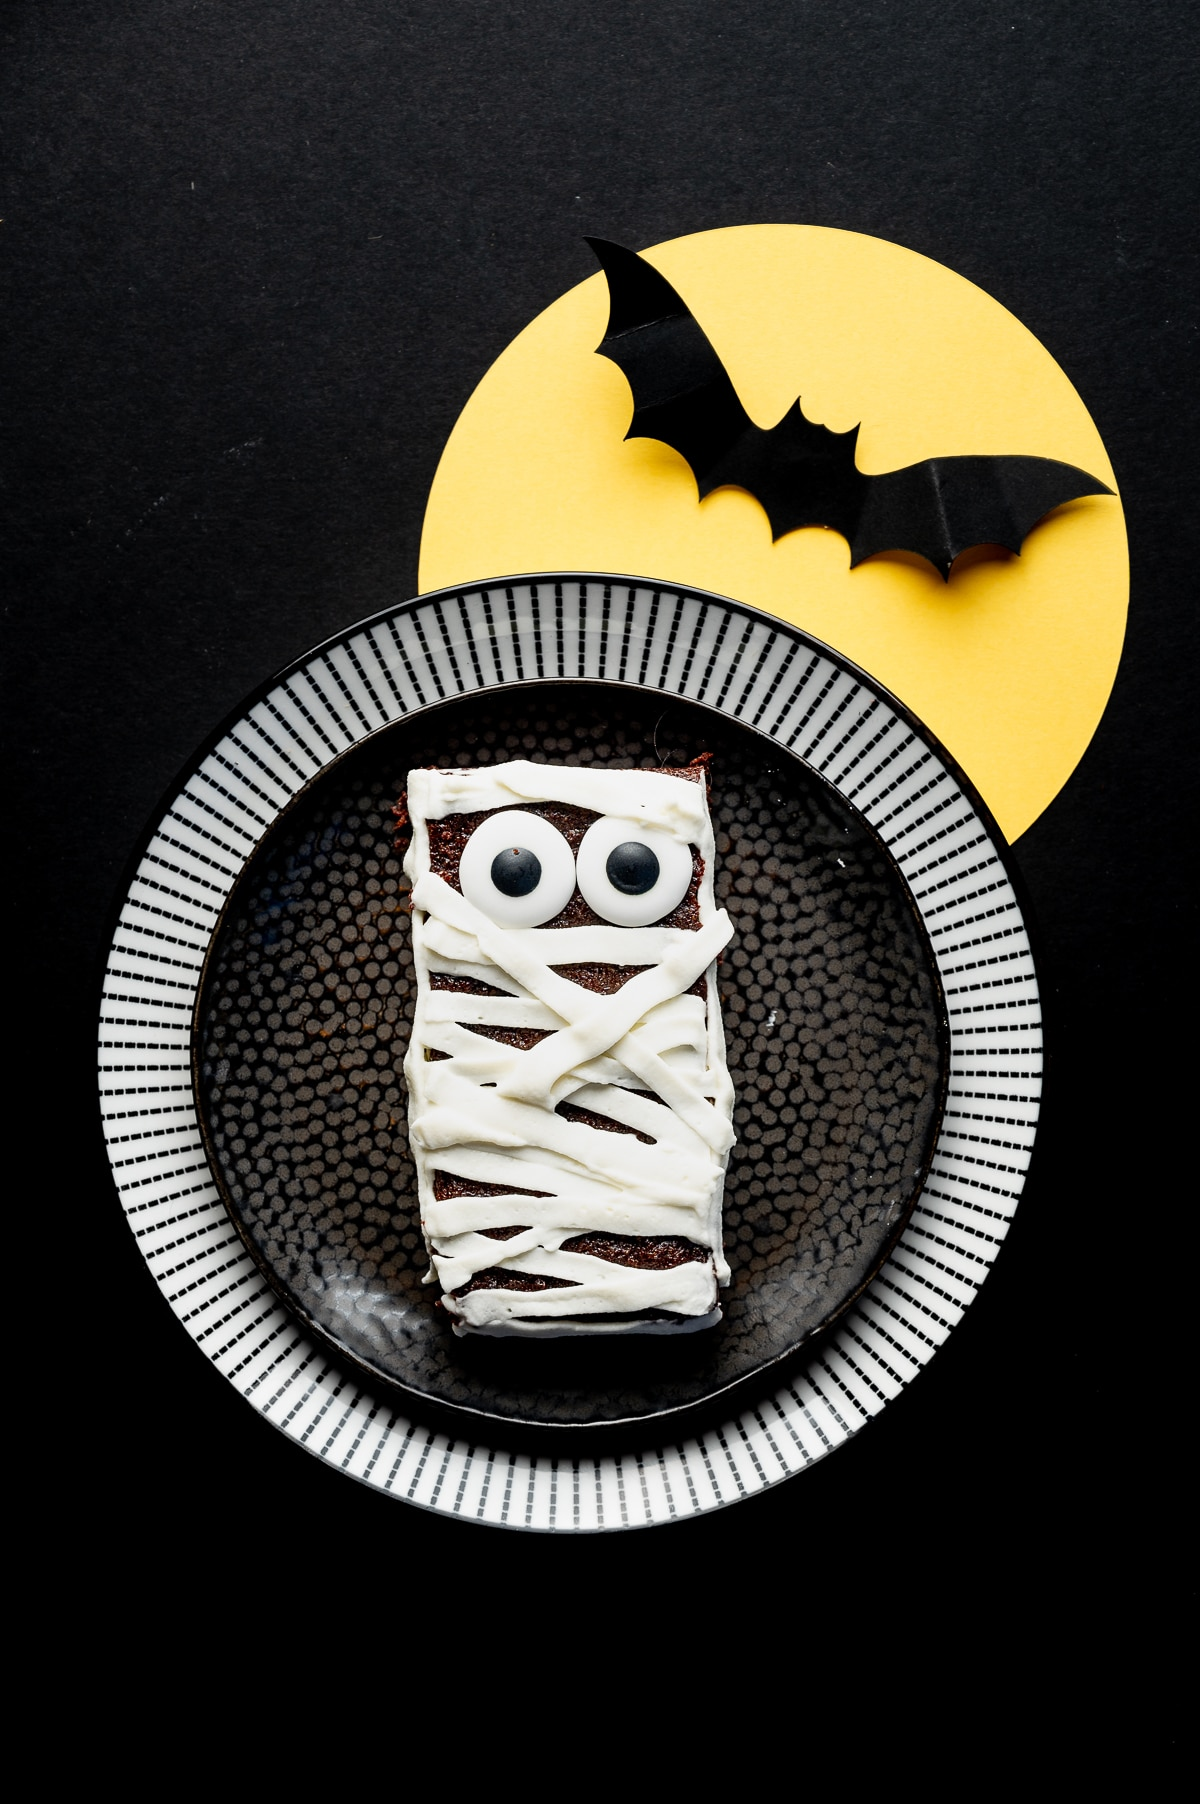 Sugar free brownie with googly eyes and frosting applied in strips to look like bandages on a black background with a bright yellow paper moon and paper bat